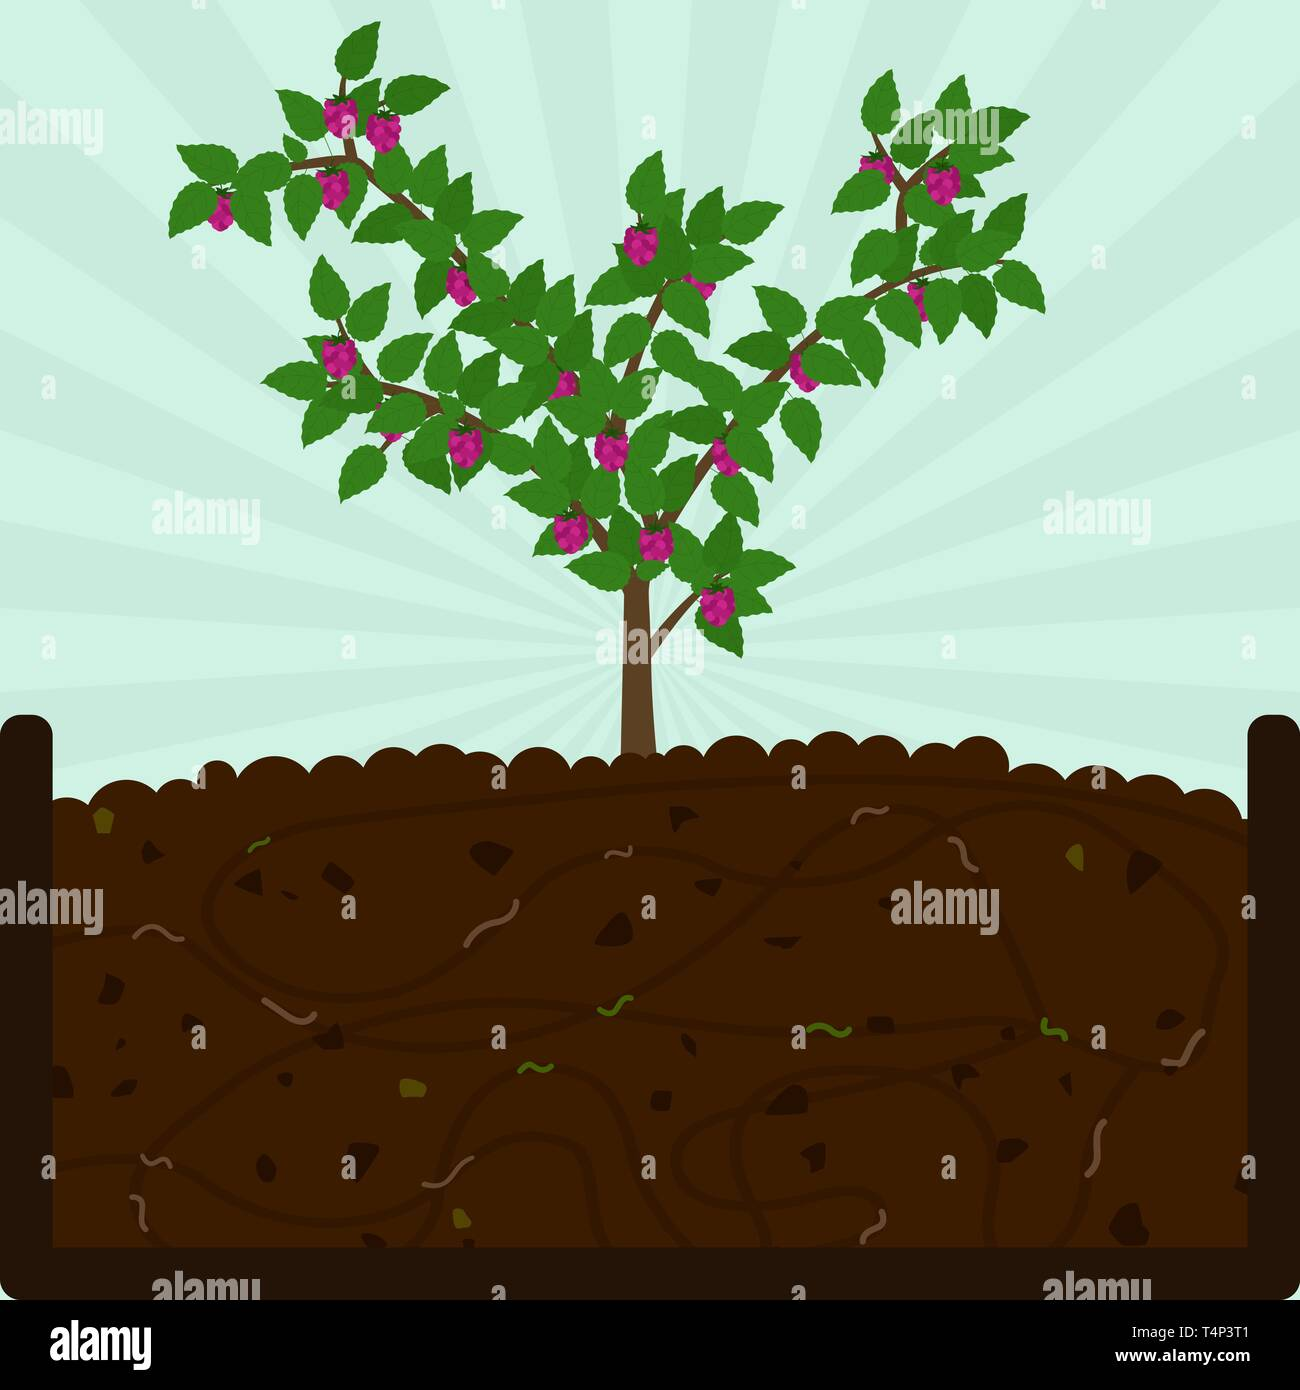 Planting raspberry fruit tree. Composting process with organic matter, microorganisms and earthworms. Fallen leaves on the ground. - Stock Vector